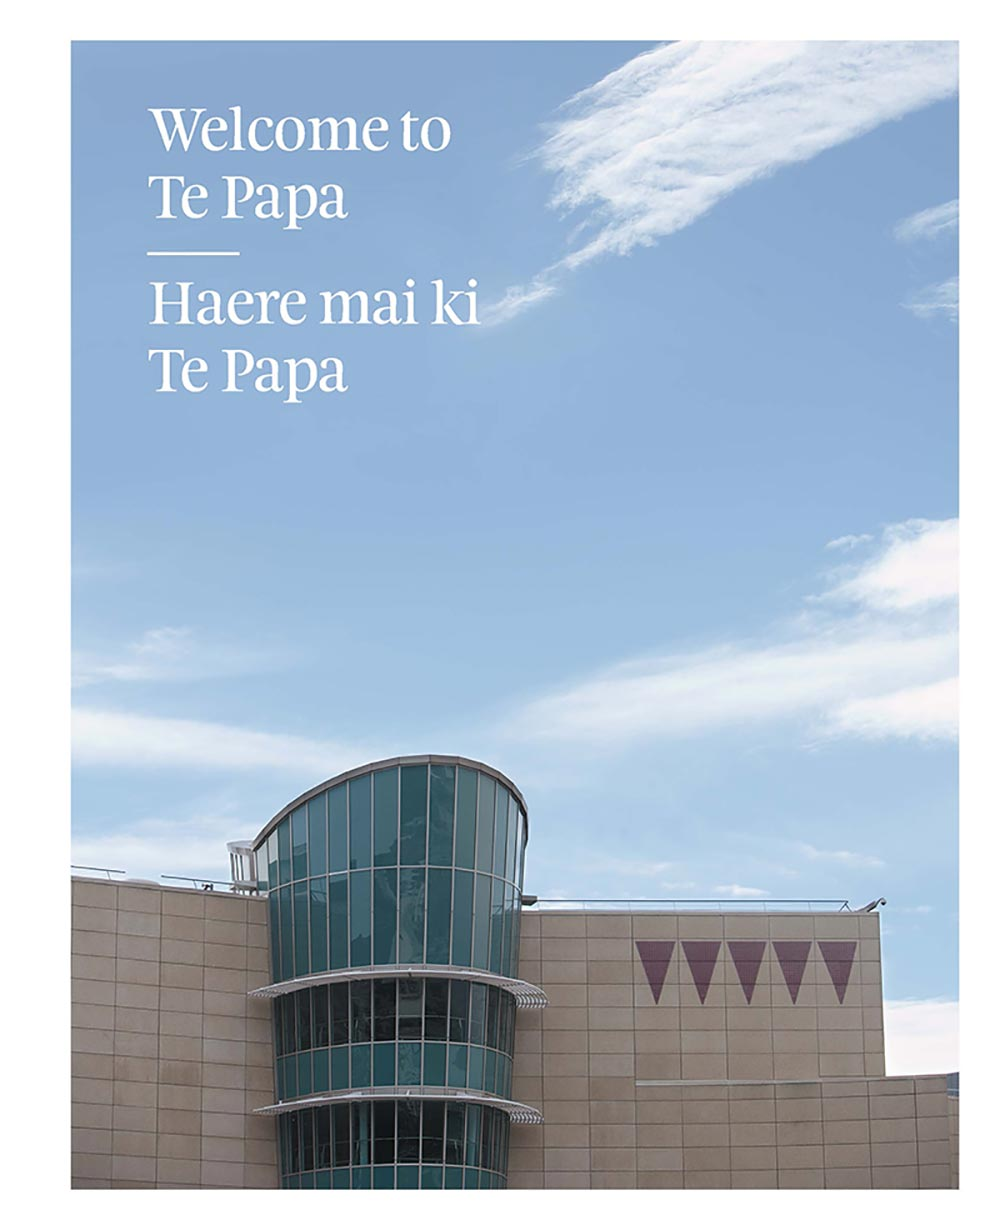 Book page showing Te Papa building